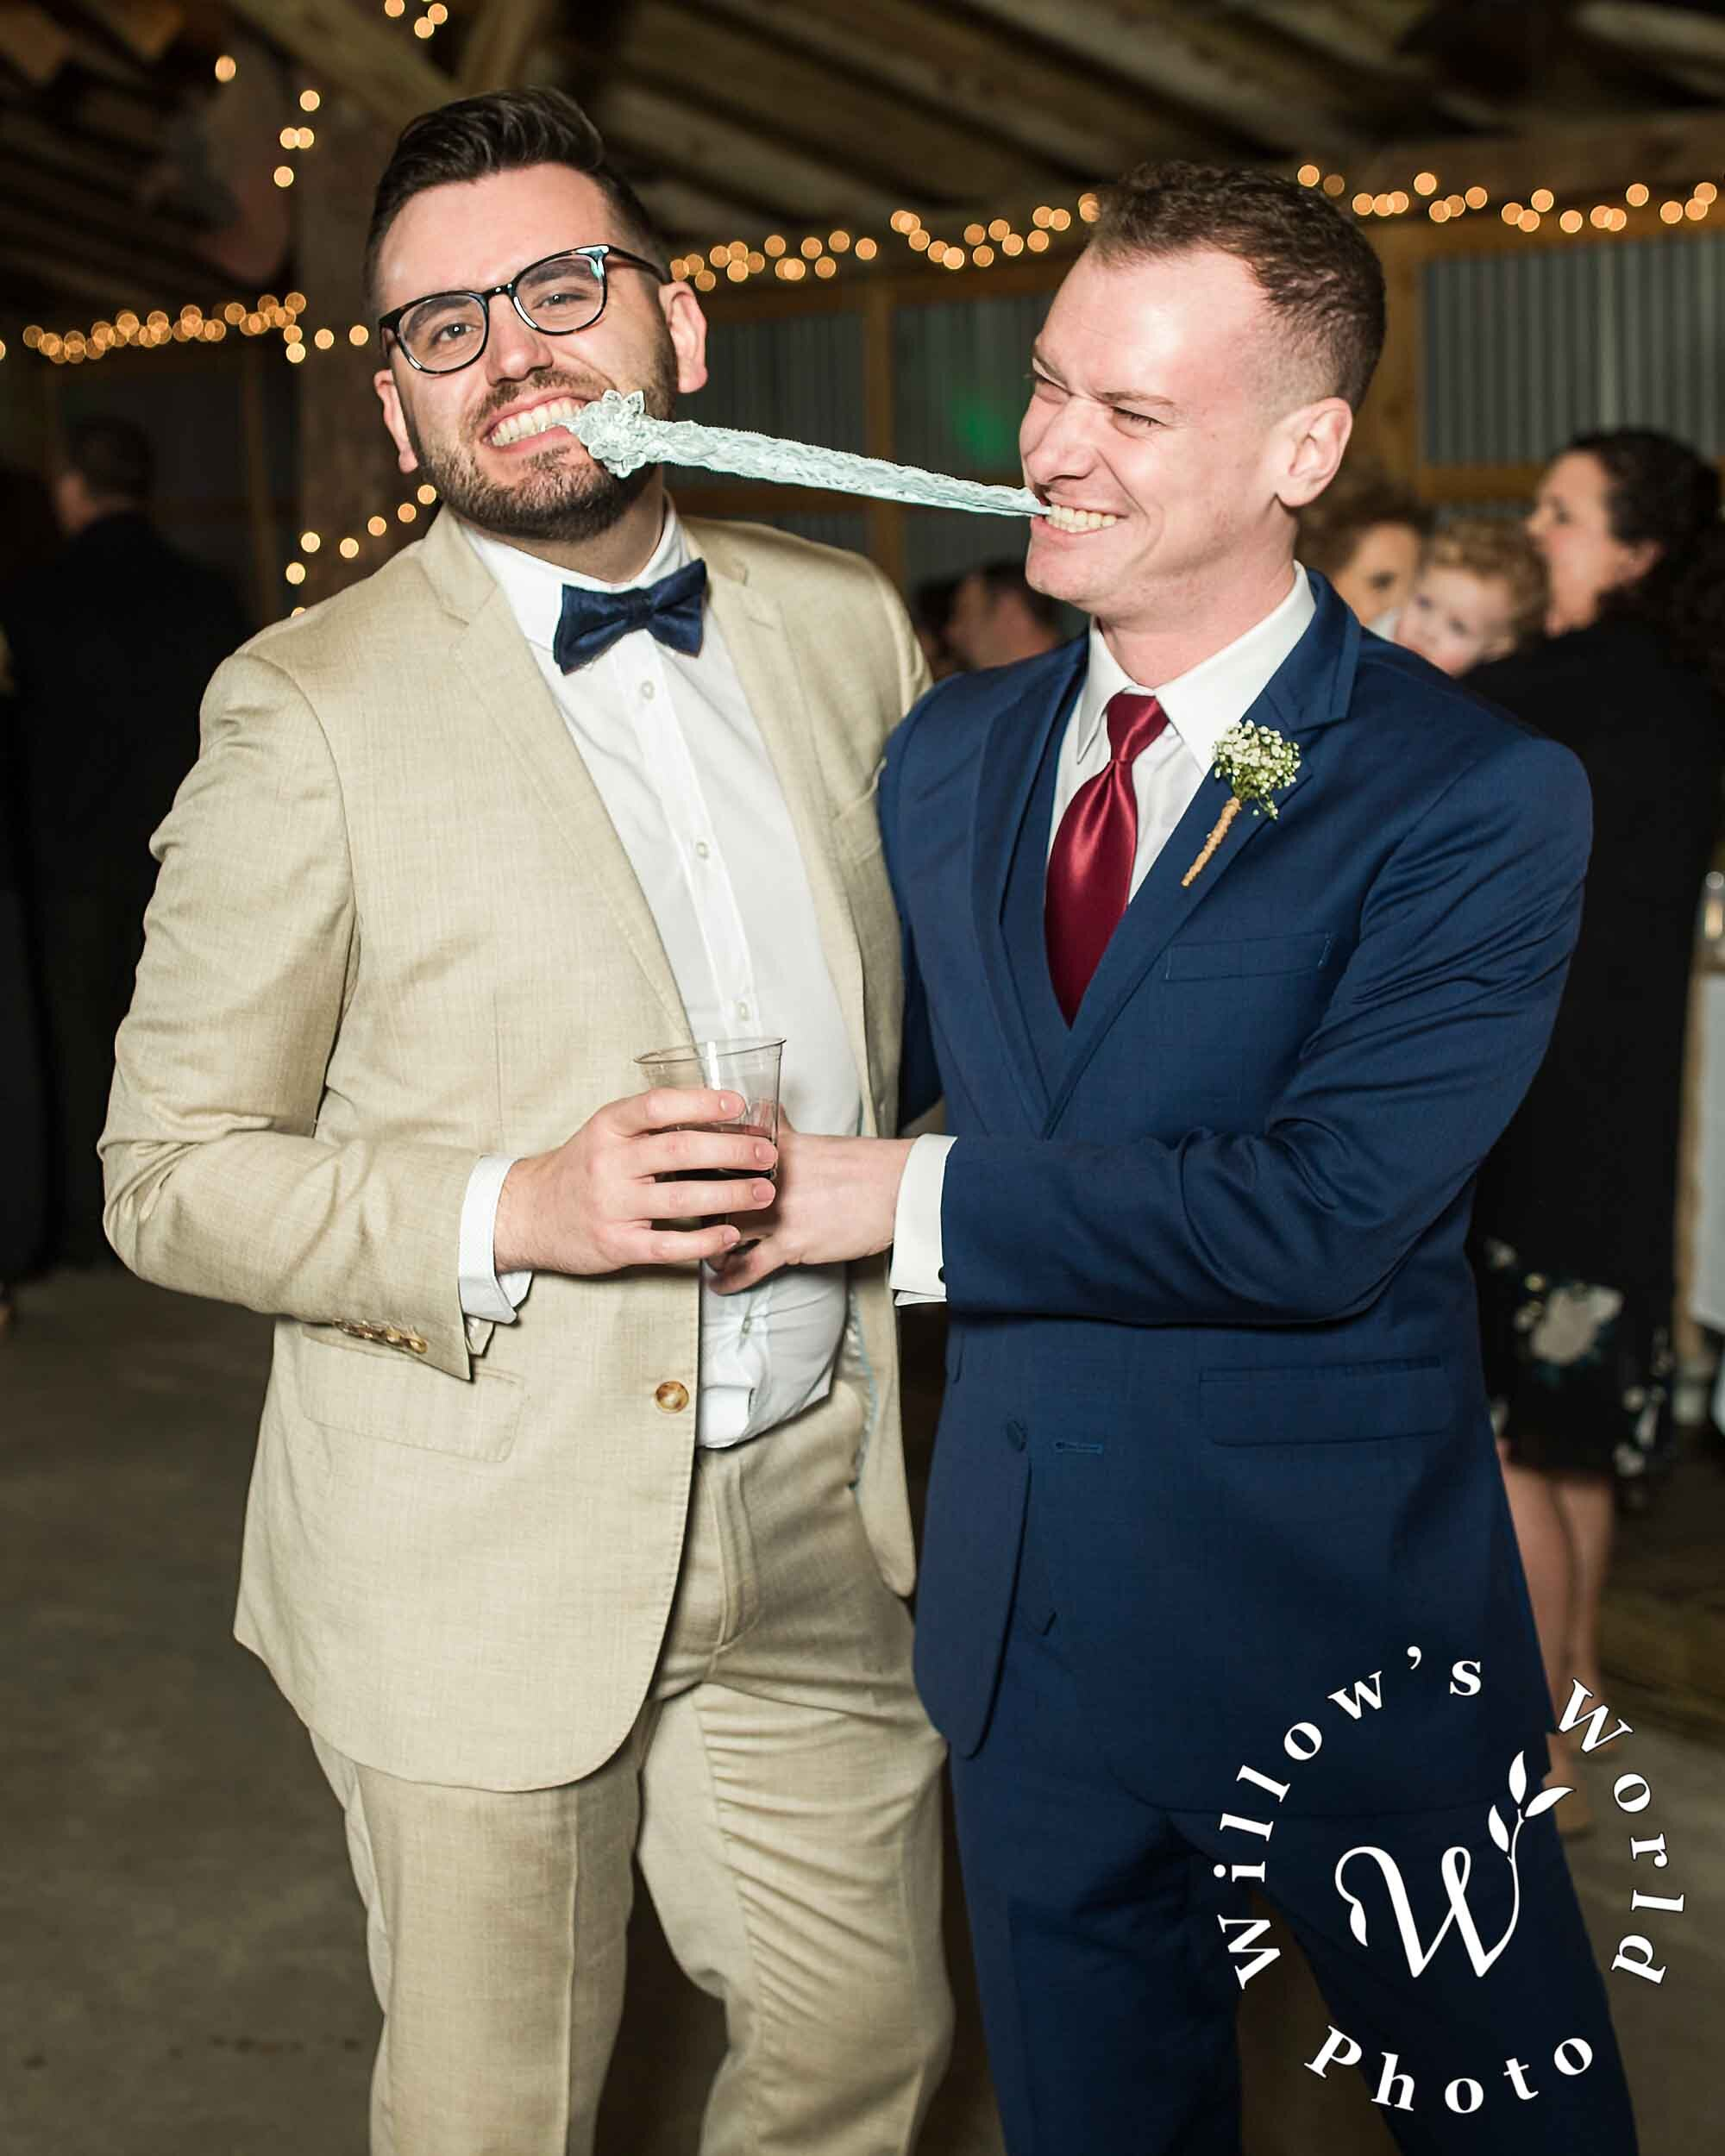 34-Bayou-Barn-Marrero-LA-New-Orleans-Wedding-Reception-Photo-Willows-World-Photo.CR2.jpg